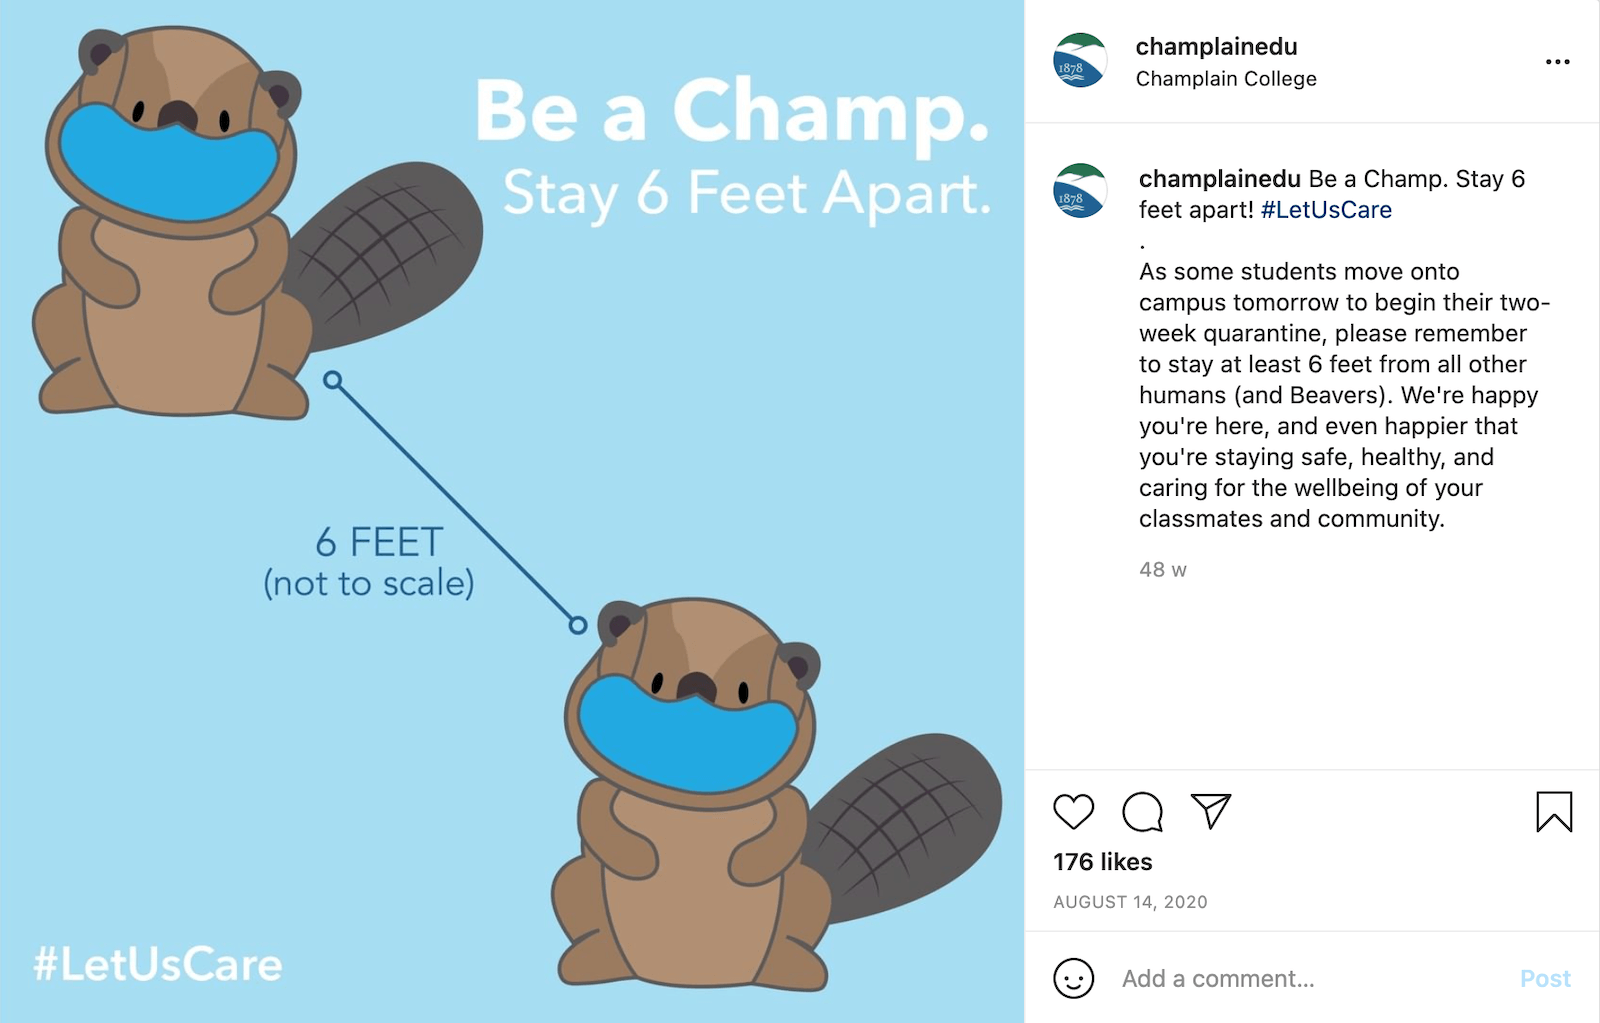 """Instagram post by champlainedu showing an illustration of two beavers on light blue background, both wearing blue face masks. There's a line between them marking a distance of 6 feet. The hashtag #LetUsCare is displayed in the bottom left corner of the image. The caption of the post reads, """"Be a Champ. Stay 6 feet apart! #LetUsCare . As some students move onto campus tomorrow to begin their two-week quarantine, please remember to stay at least 6 feet from all other humans (and Beavers). We're happy you're here, and even happier that you're staying safe, healthy, and caring for the wellbeing of your classmates and community."""""""